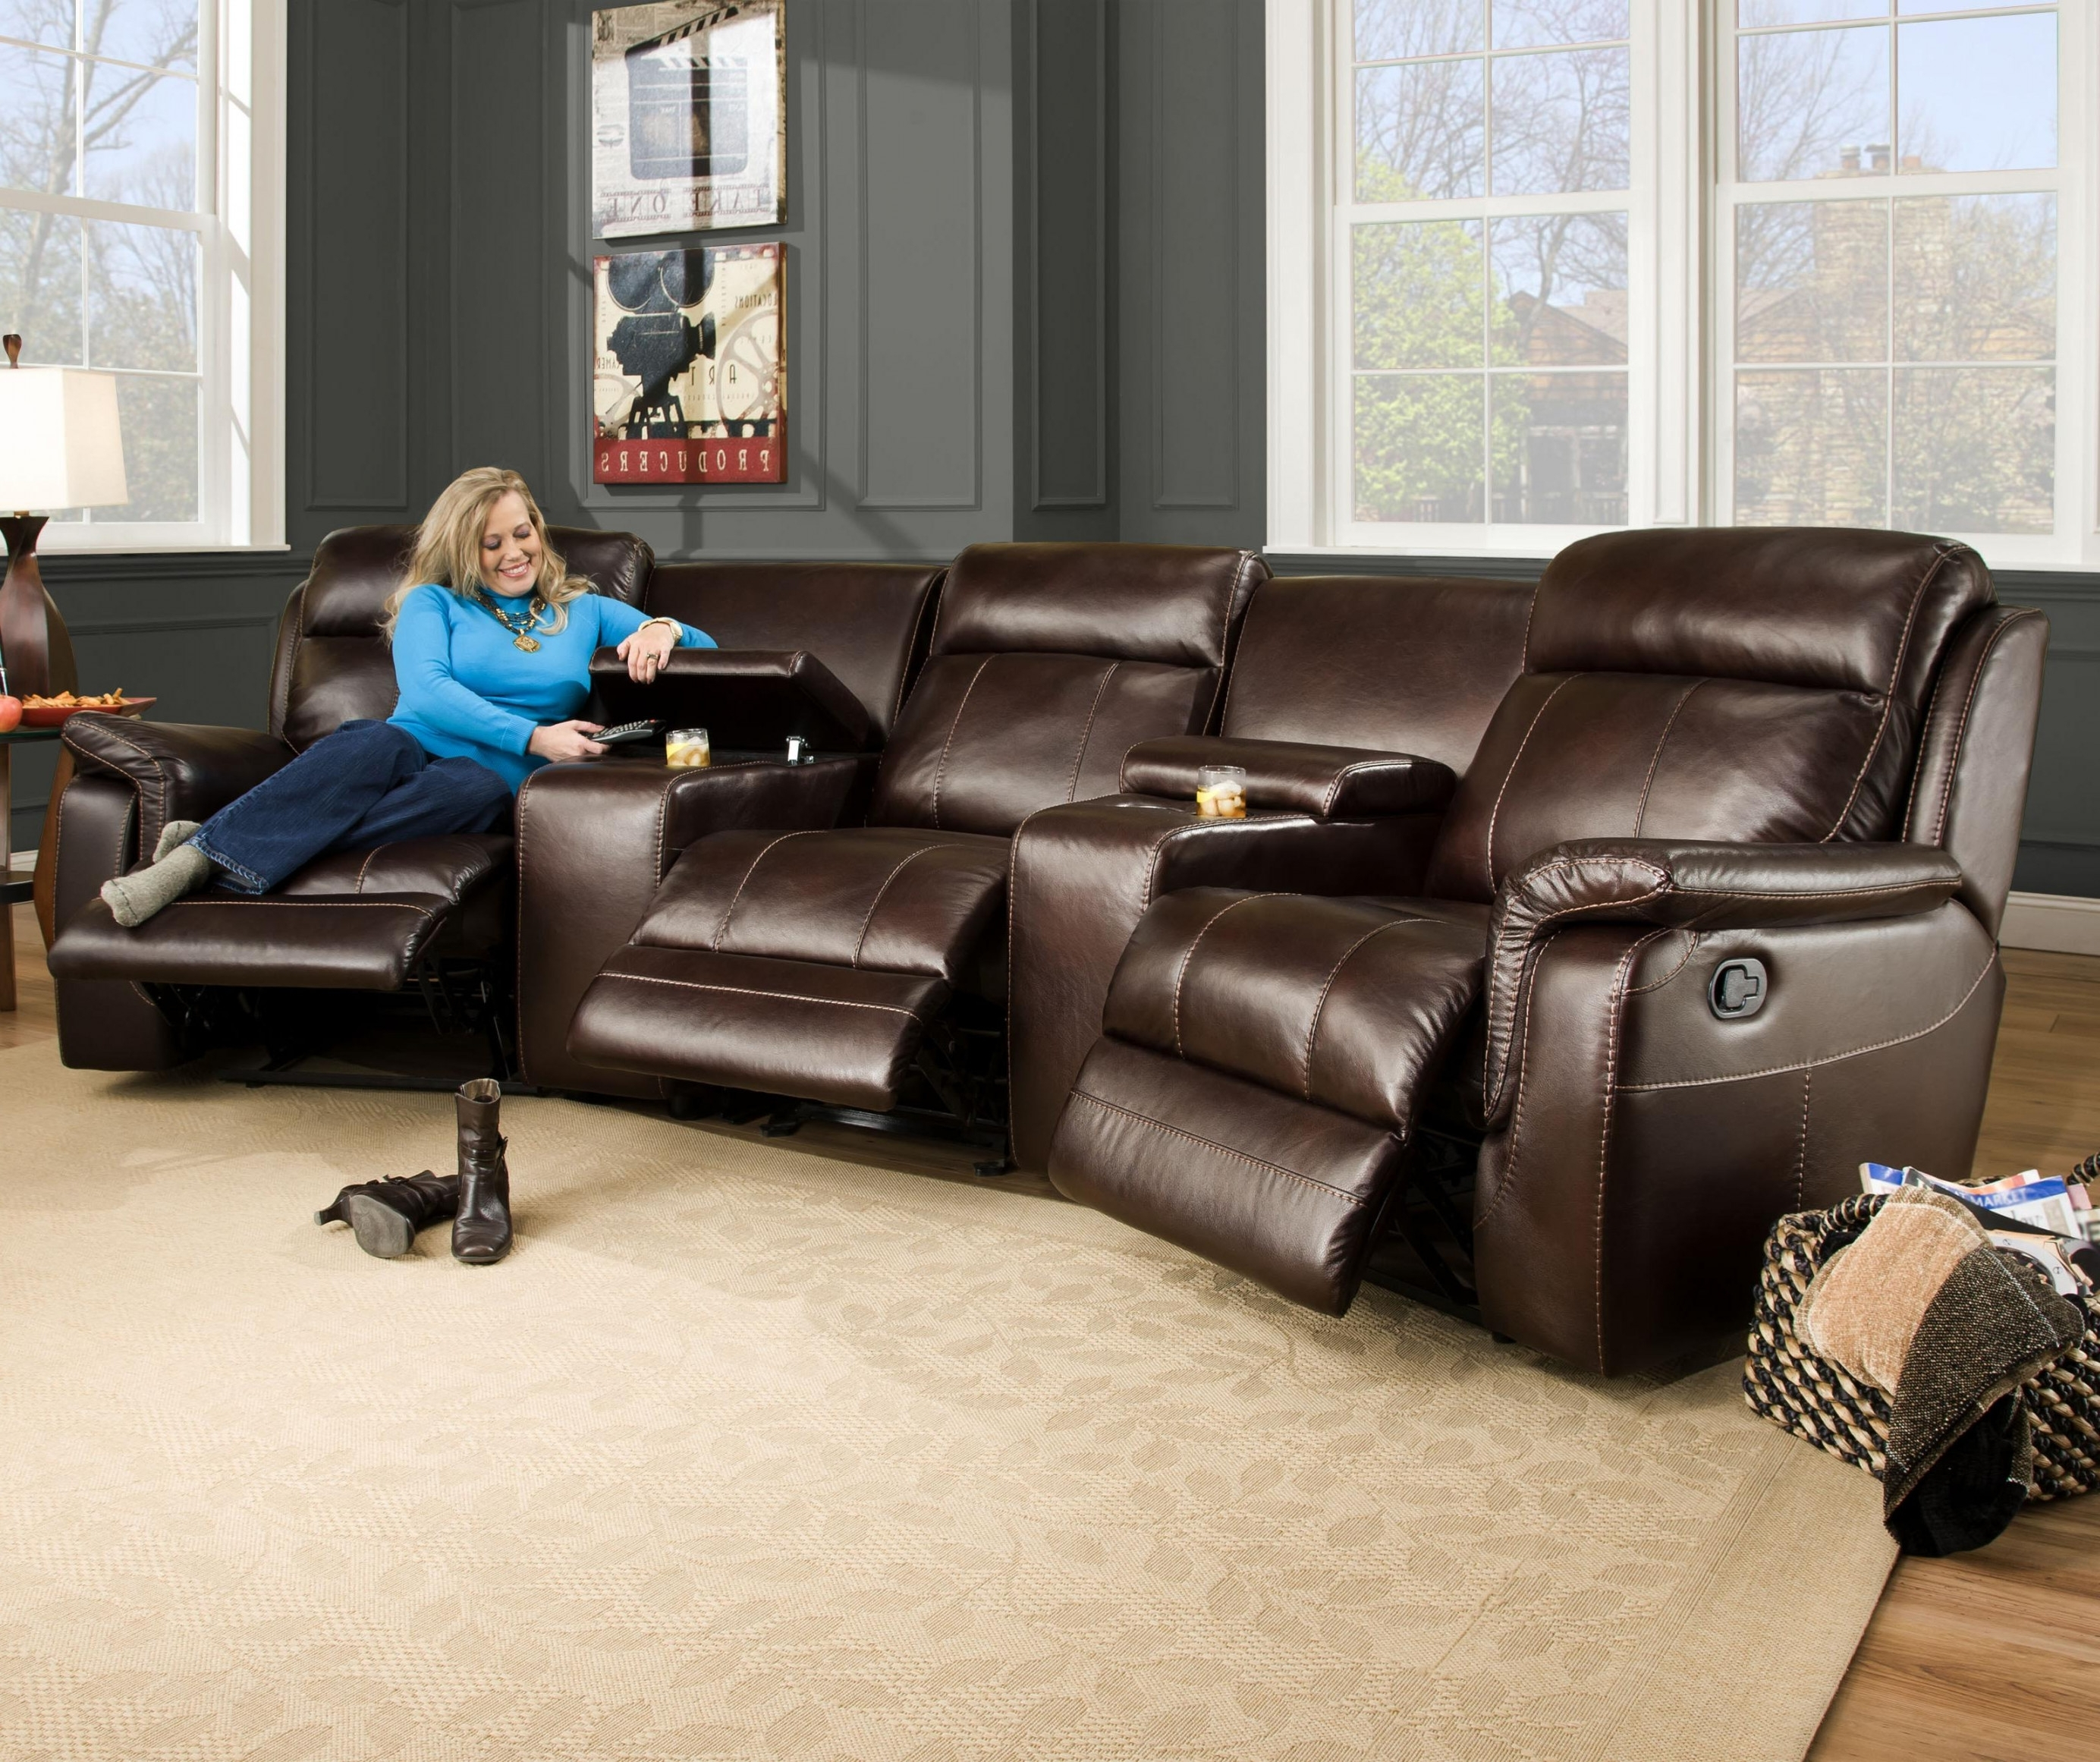 Popular Curved Sectional Sofas With Recliner Intended For Sectional Recliner Couch (View 9 of 15)